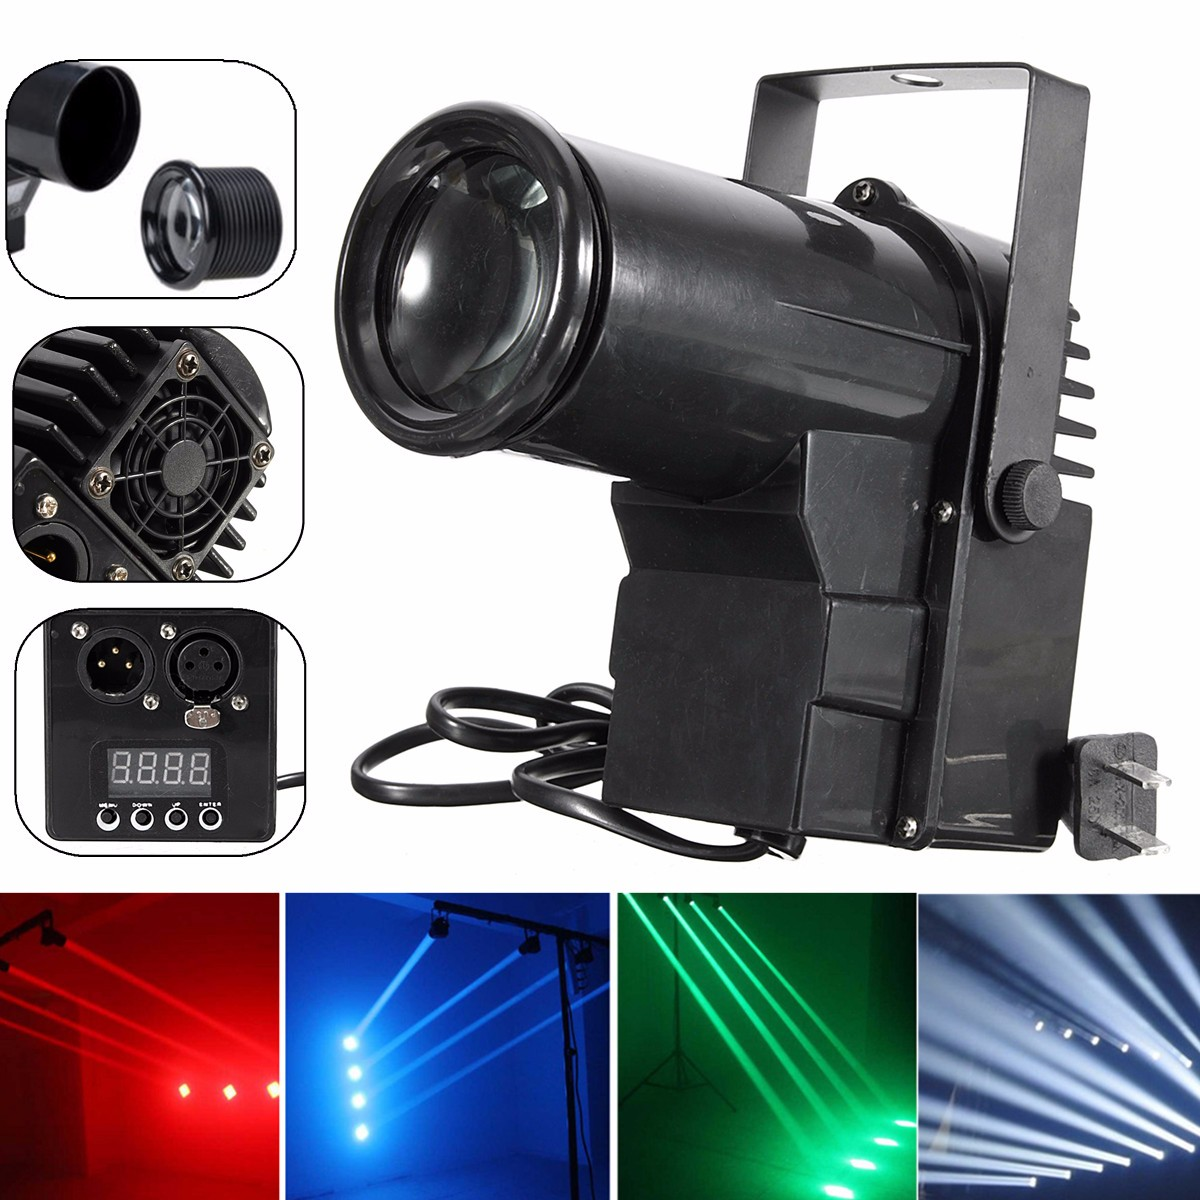 Disco Light 15W LED DMX Laser Projector Sound Controll Lamp DJ Party Stage Light Effect RGBW Lumiere Christmas Decoration